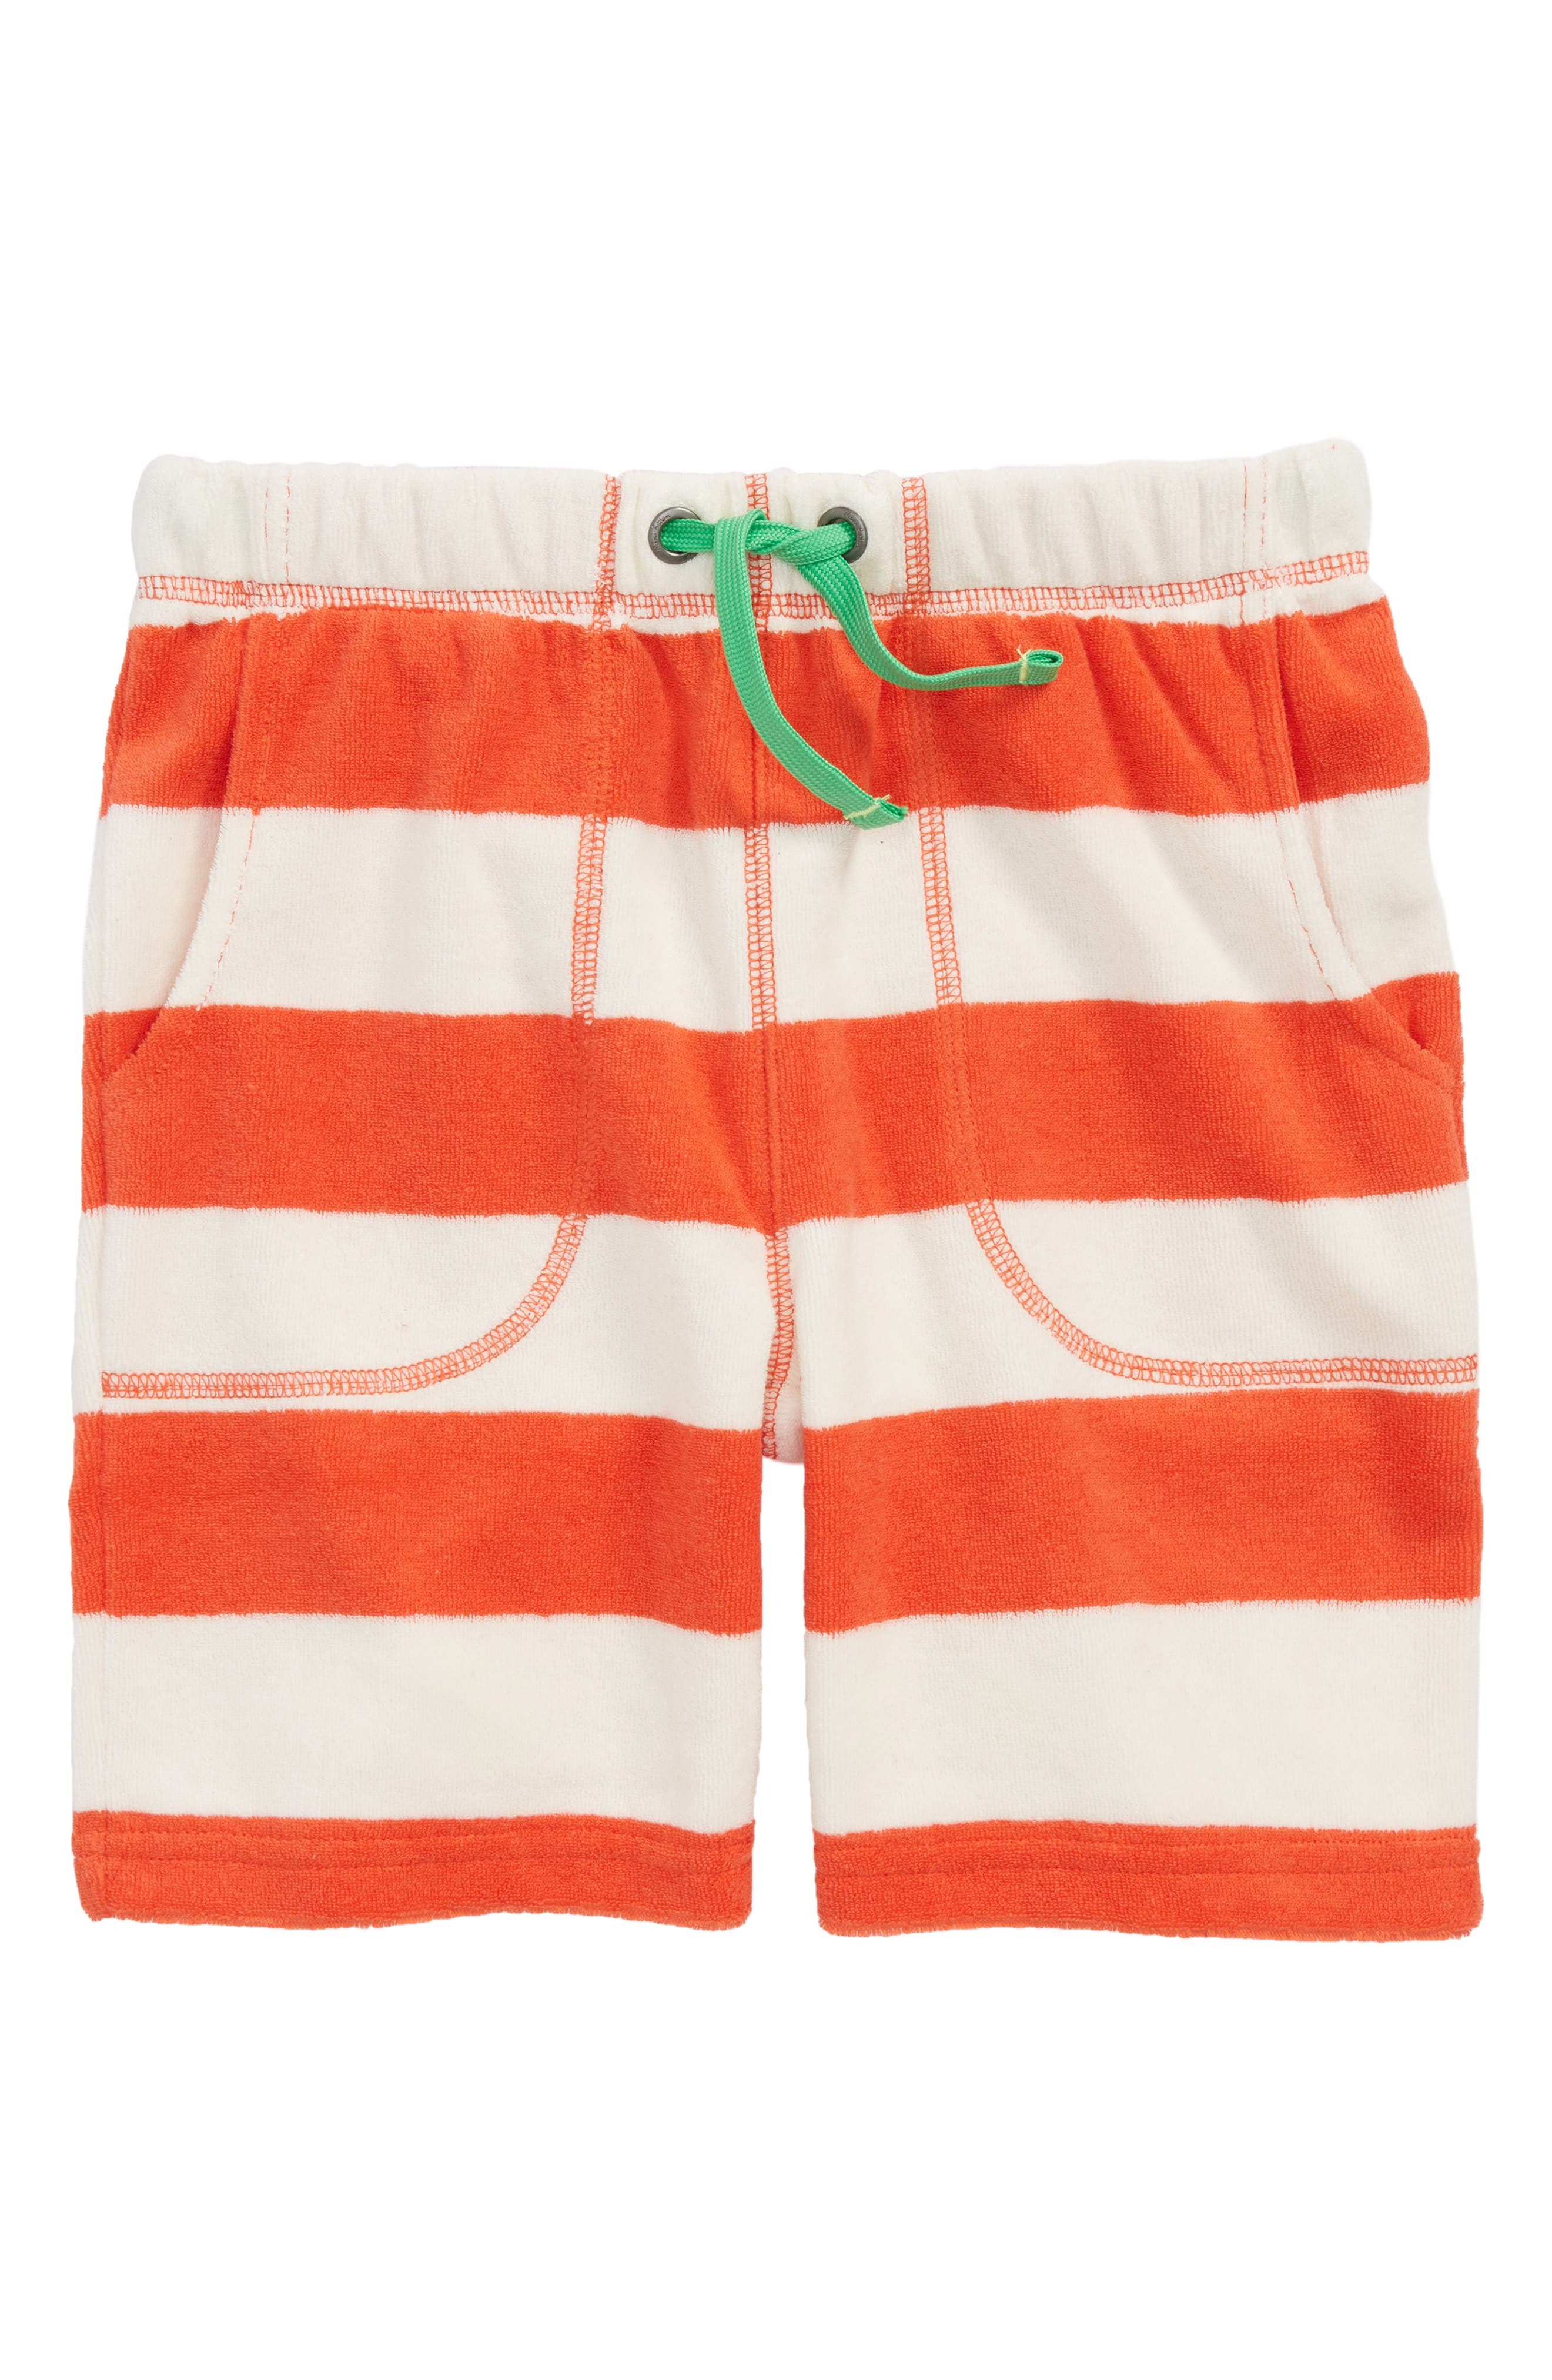 Stripe Toweling Shorts,                             Main thumbnail 1, color,                             600